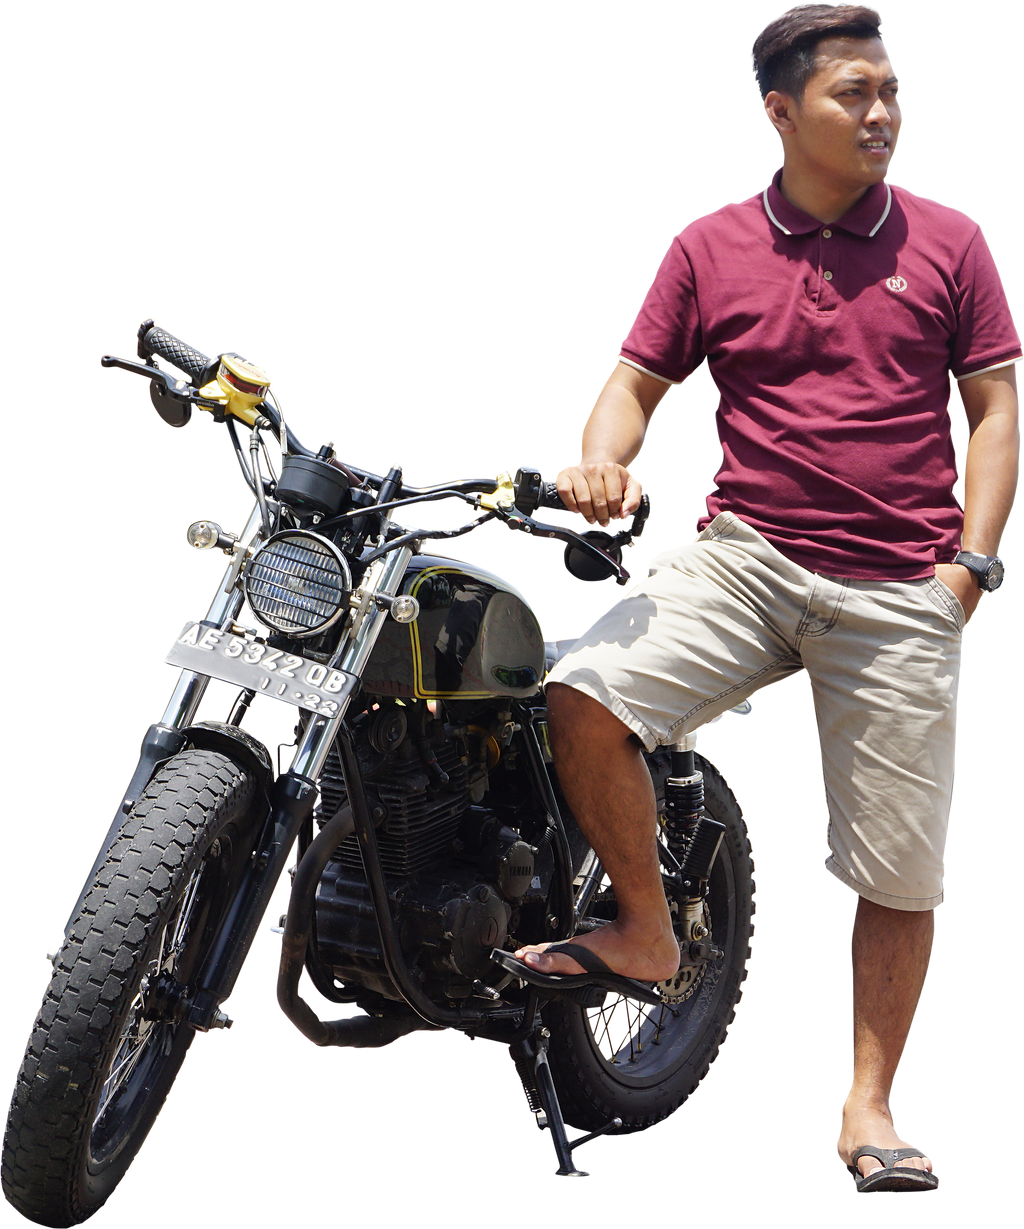 japstyle rider PNG